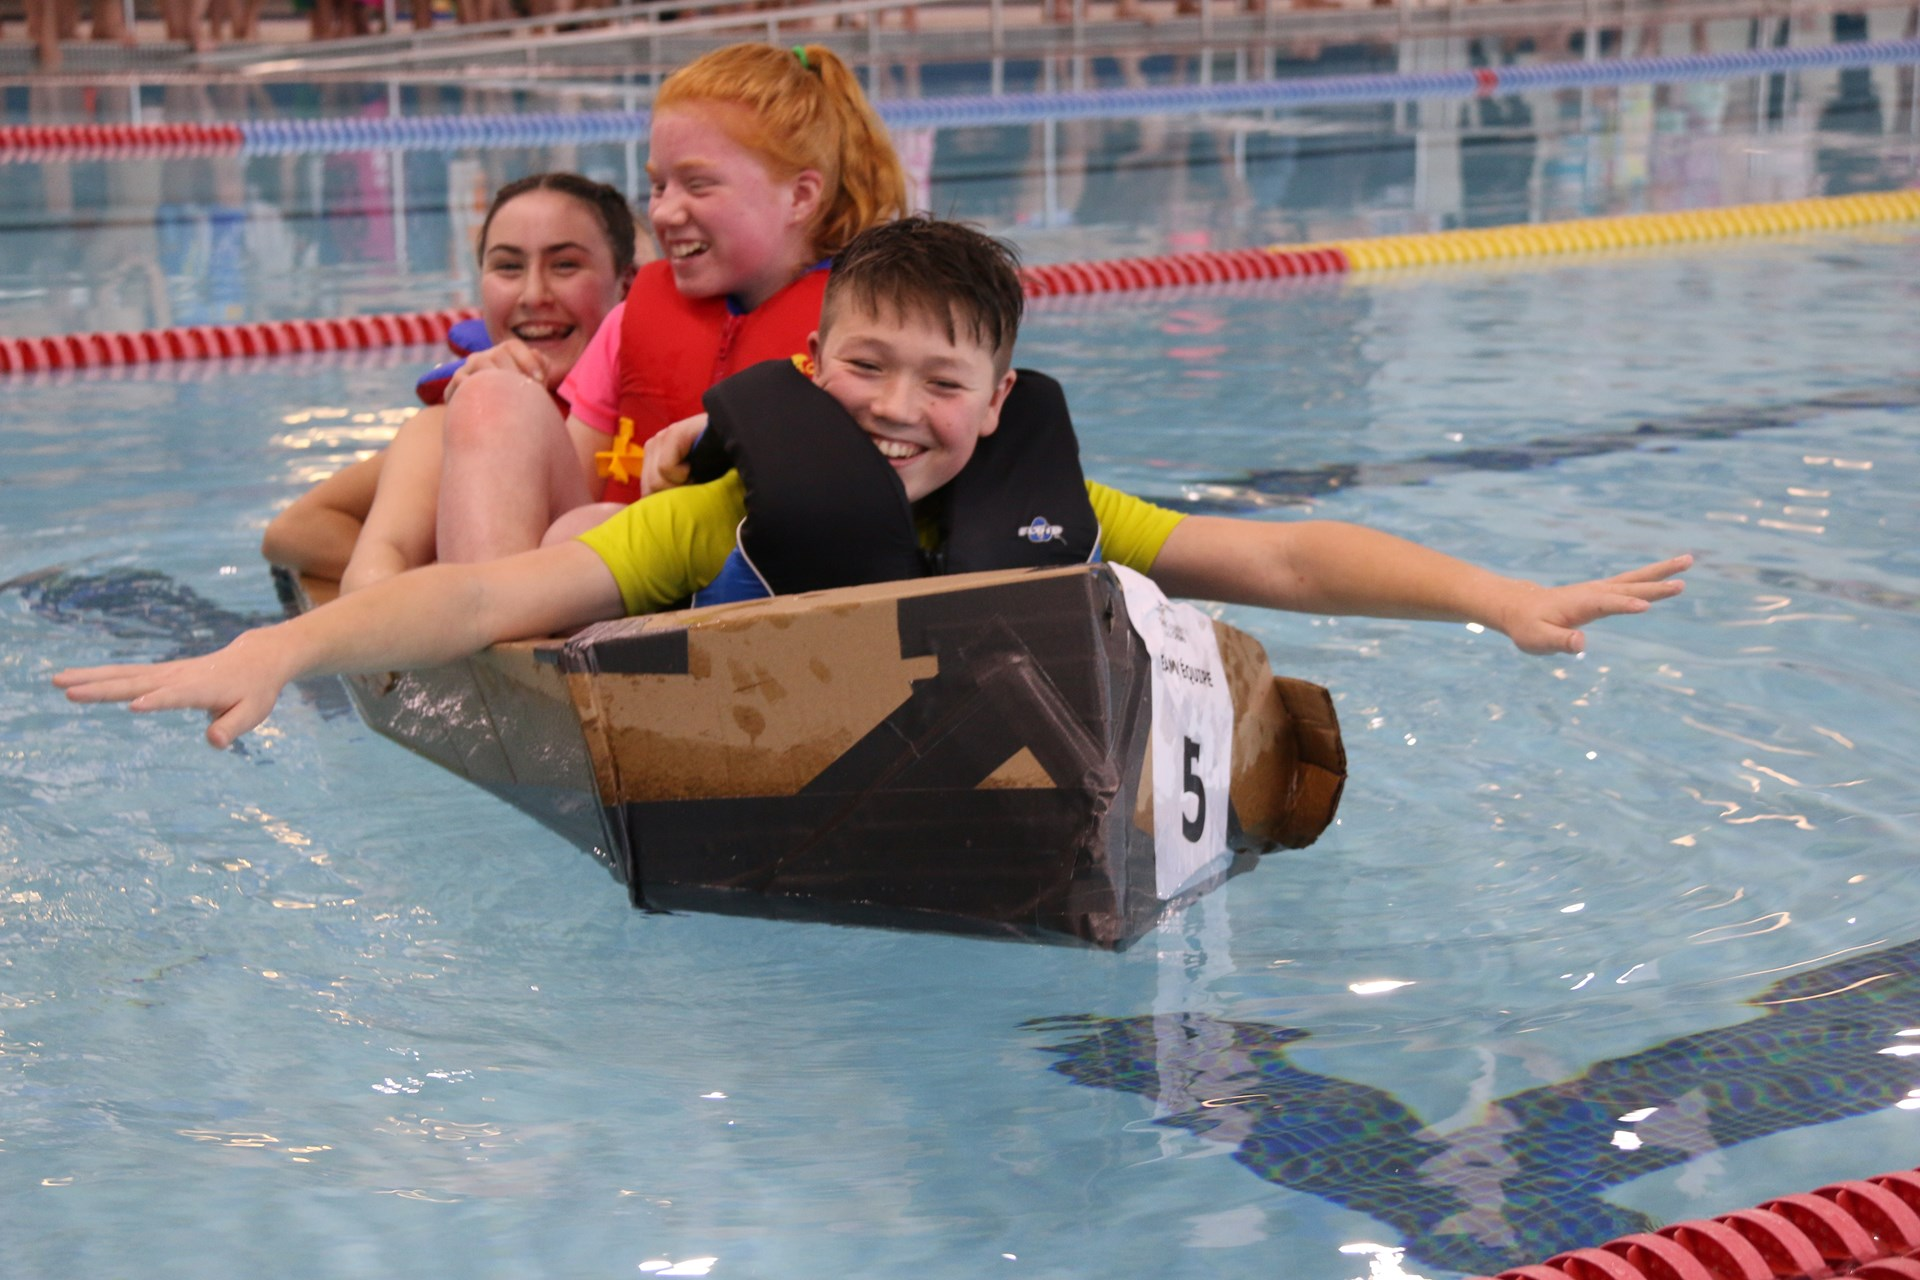 St. Michael team in their cardboard boat